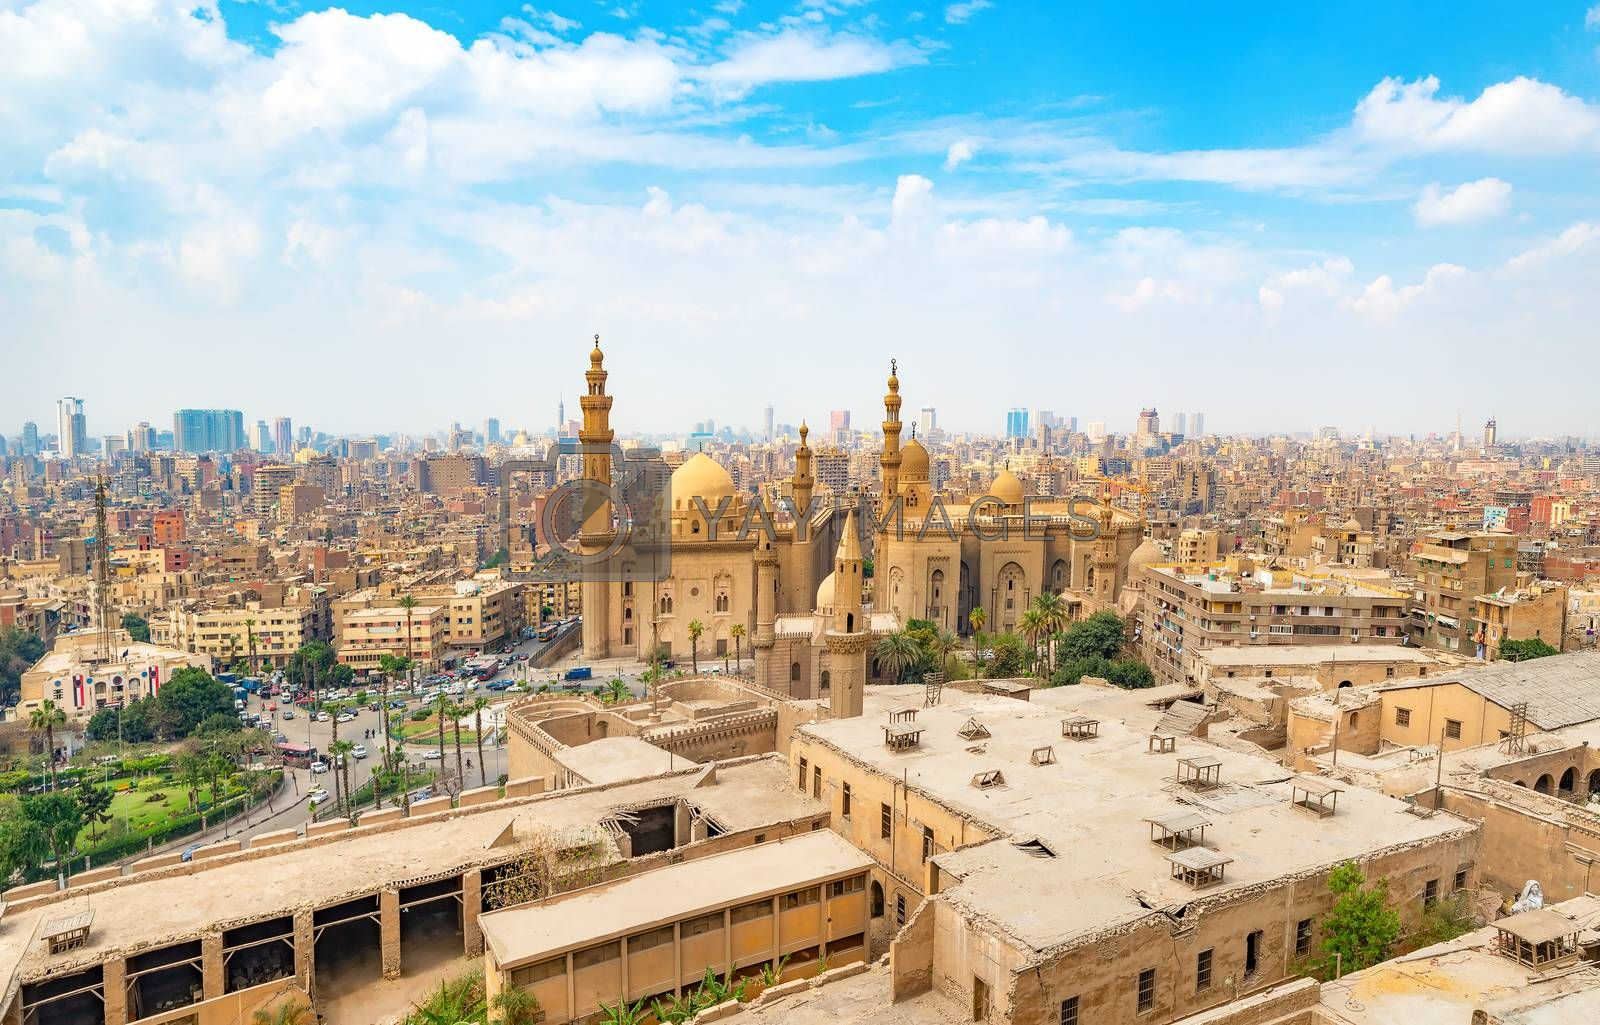 View of the Mosque Sultan Hassan in Cairo